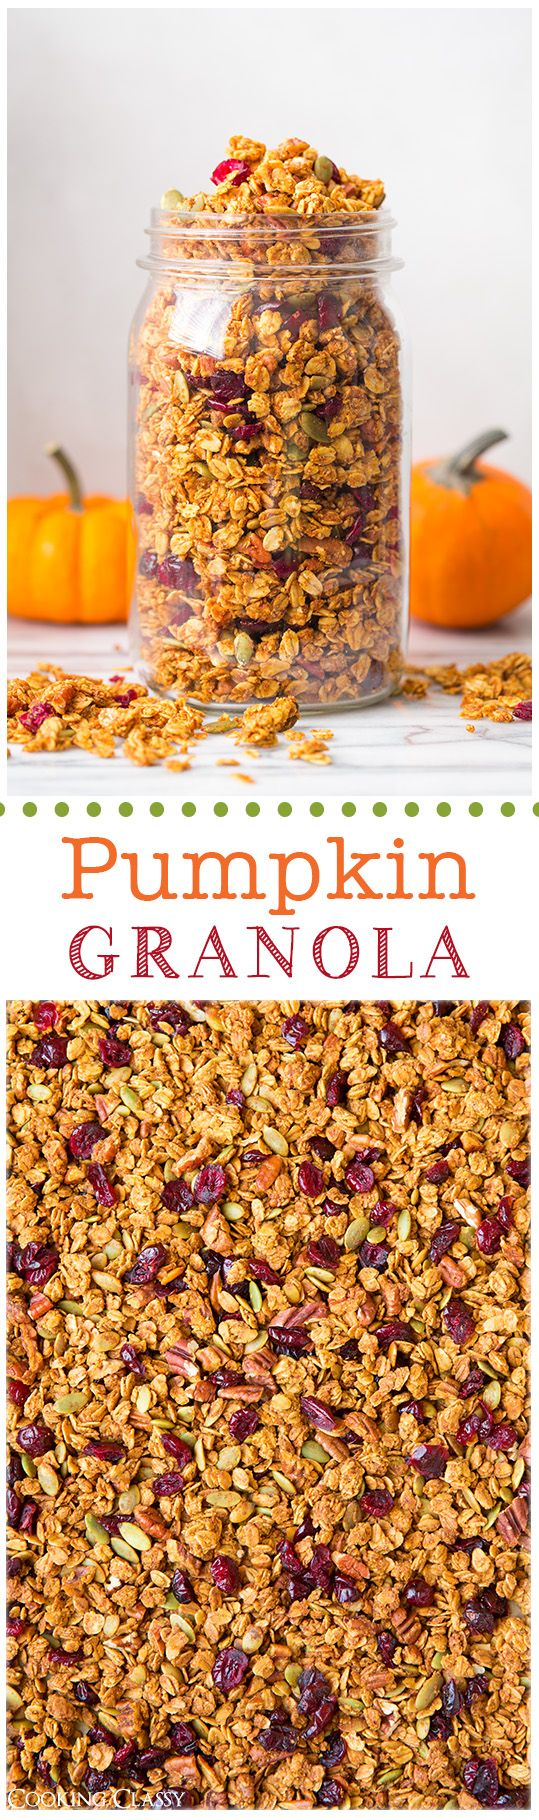 Pumpkin Granola - this is DELICIOUS! All the flavors of fall in one perfectly crunchy bowl of granola. #pumpkin #granola #fall